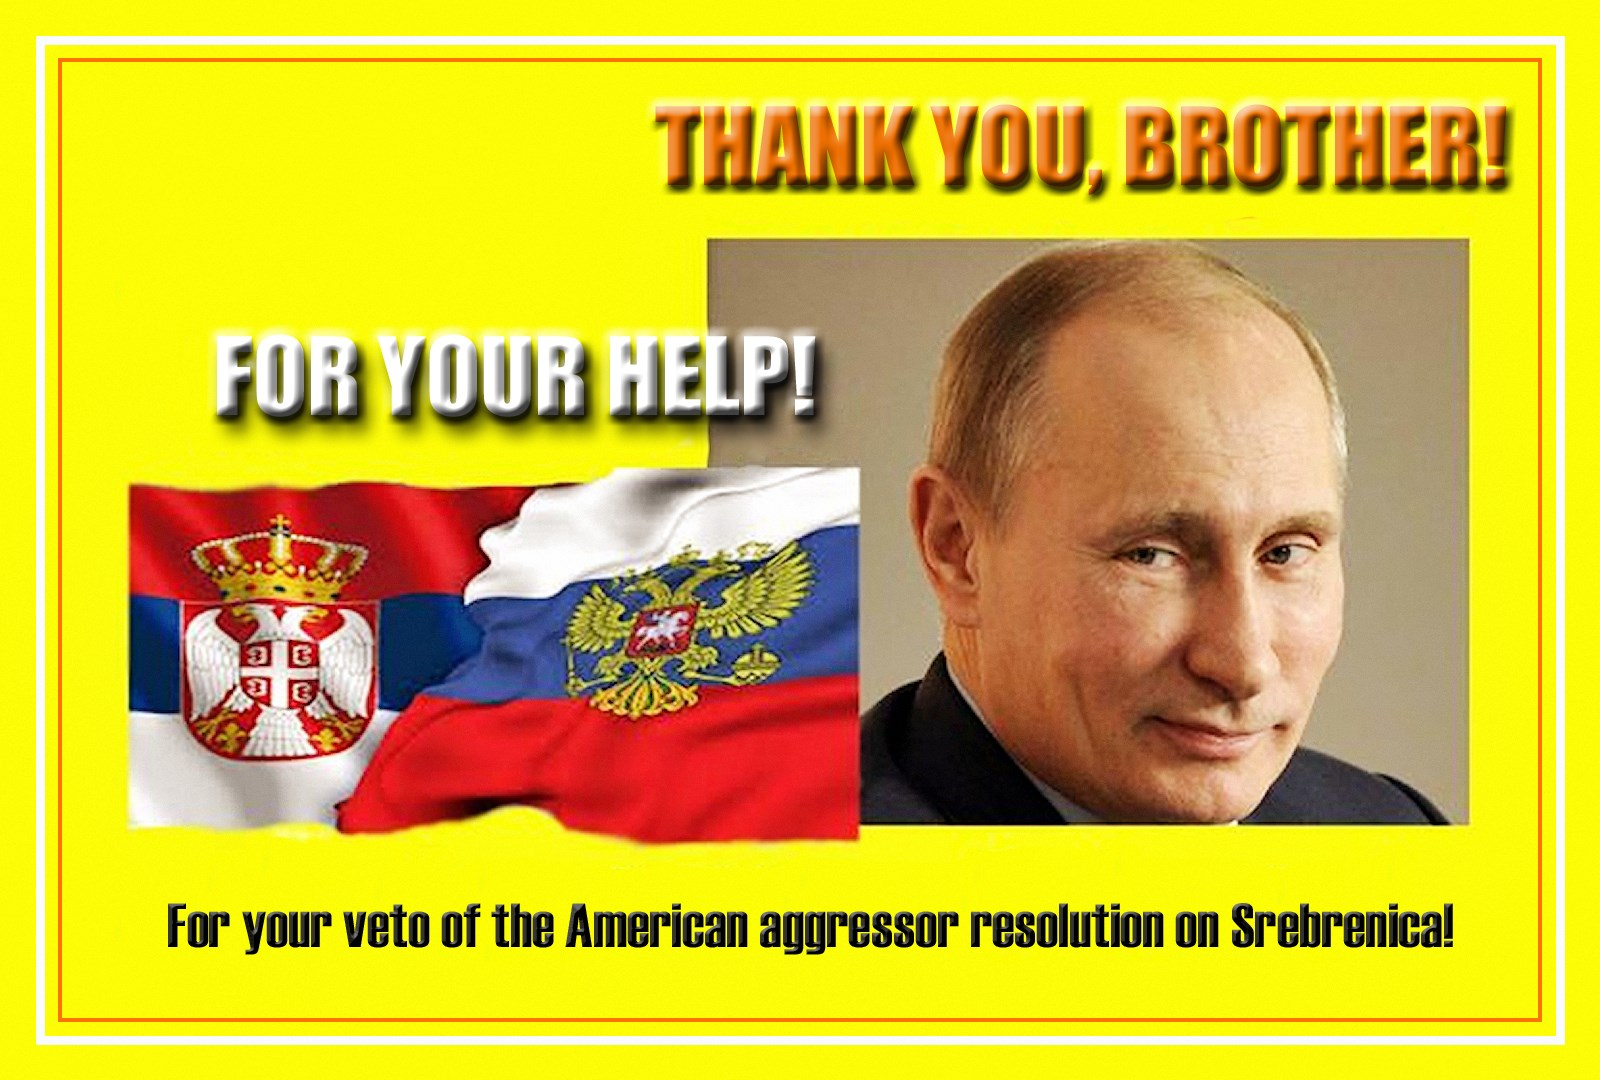 00 thank you brother! russia and serbia 01. 080715